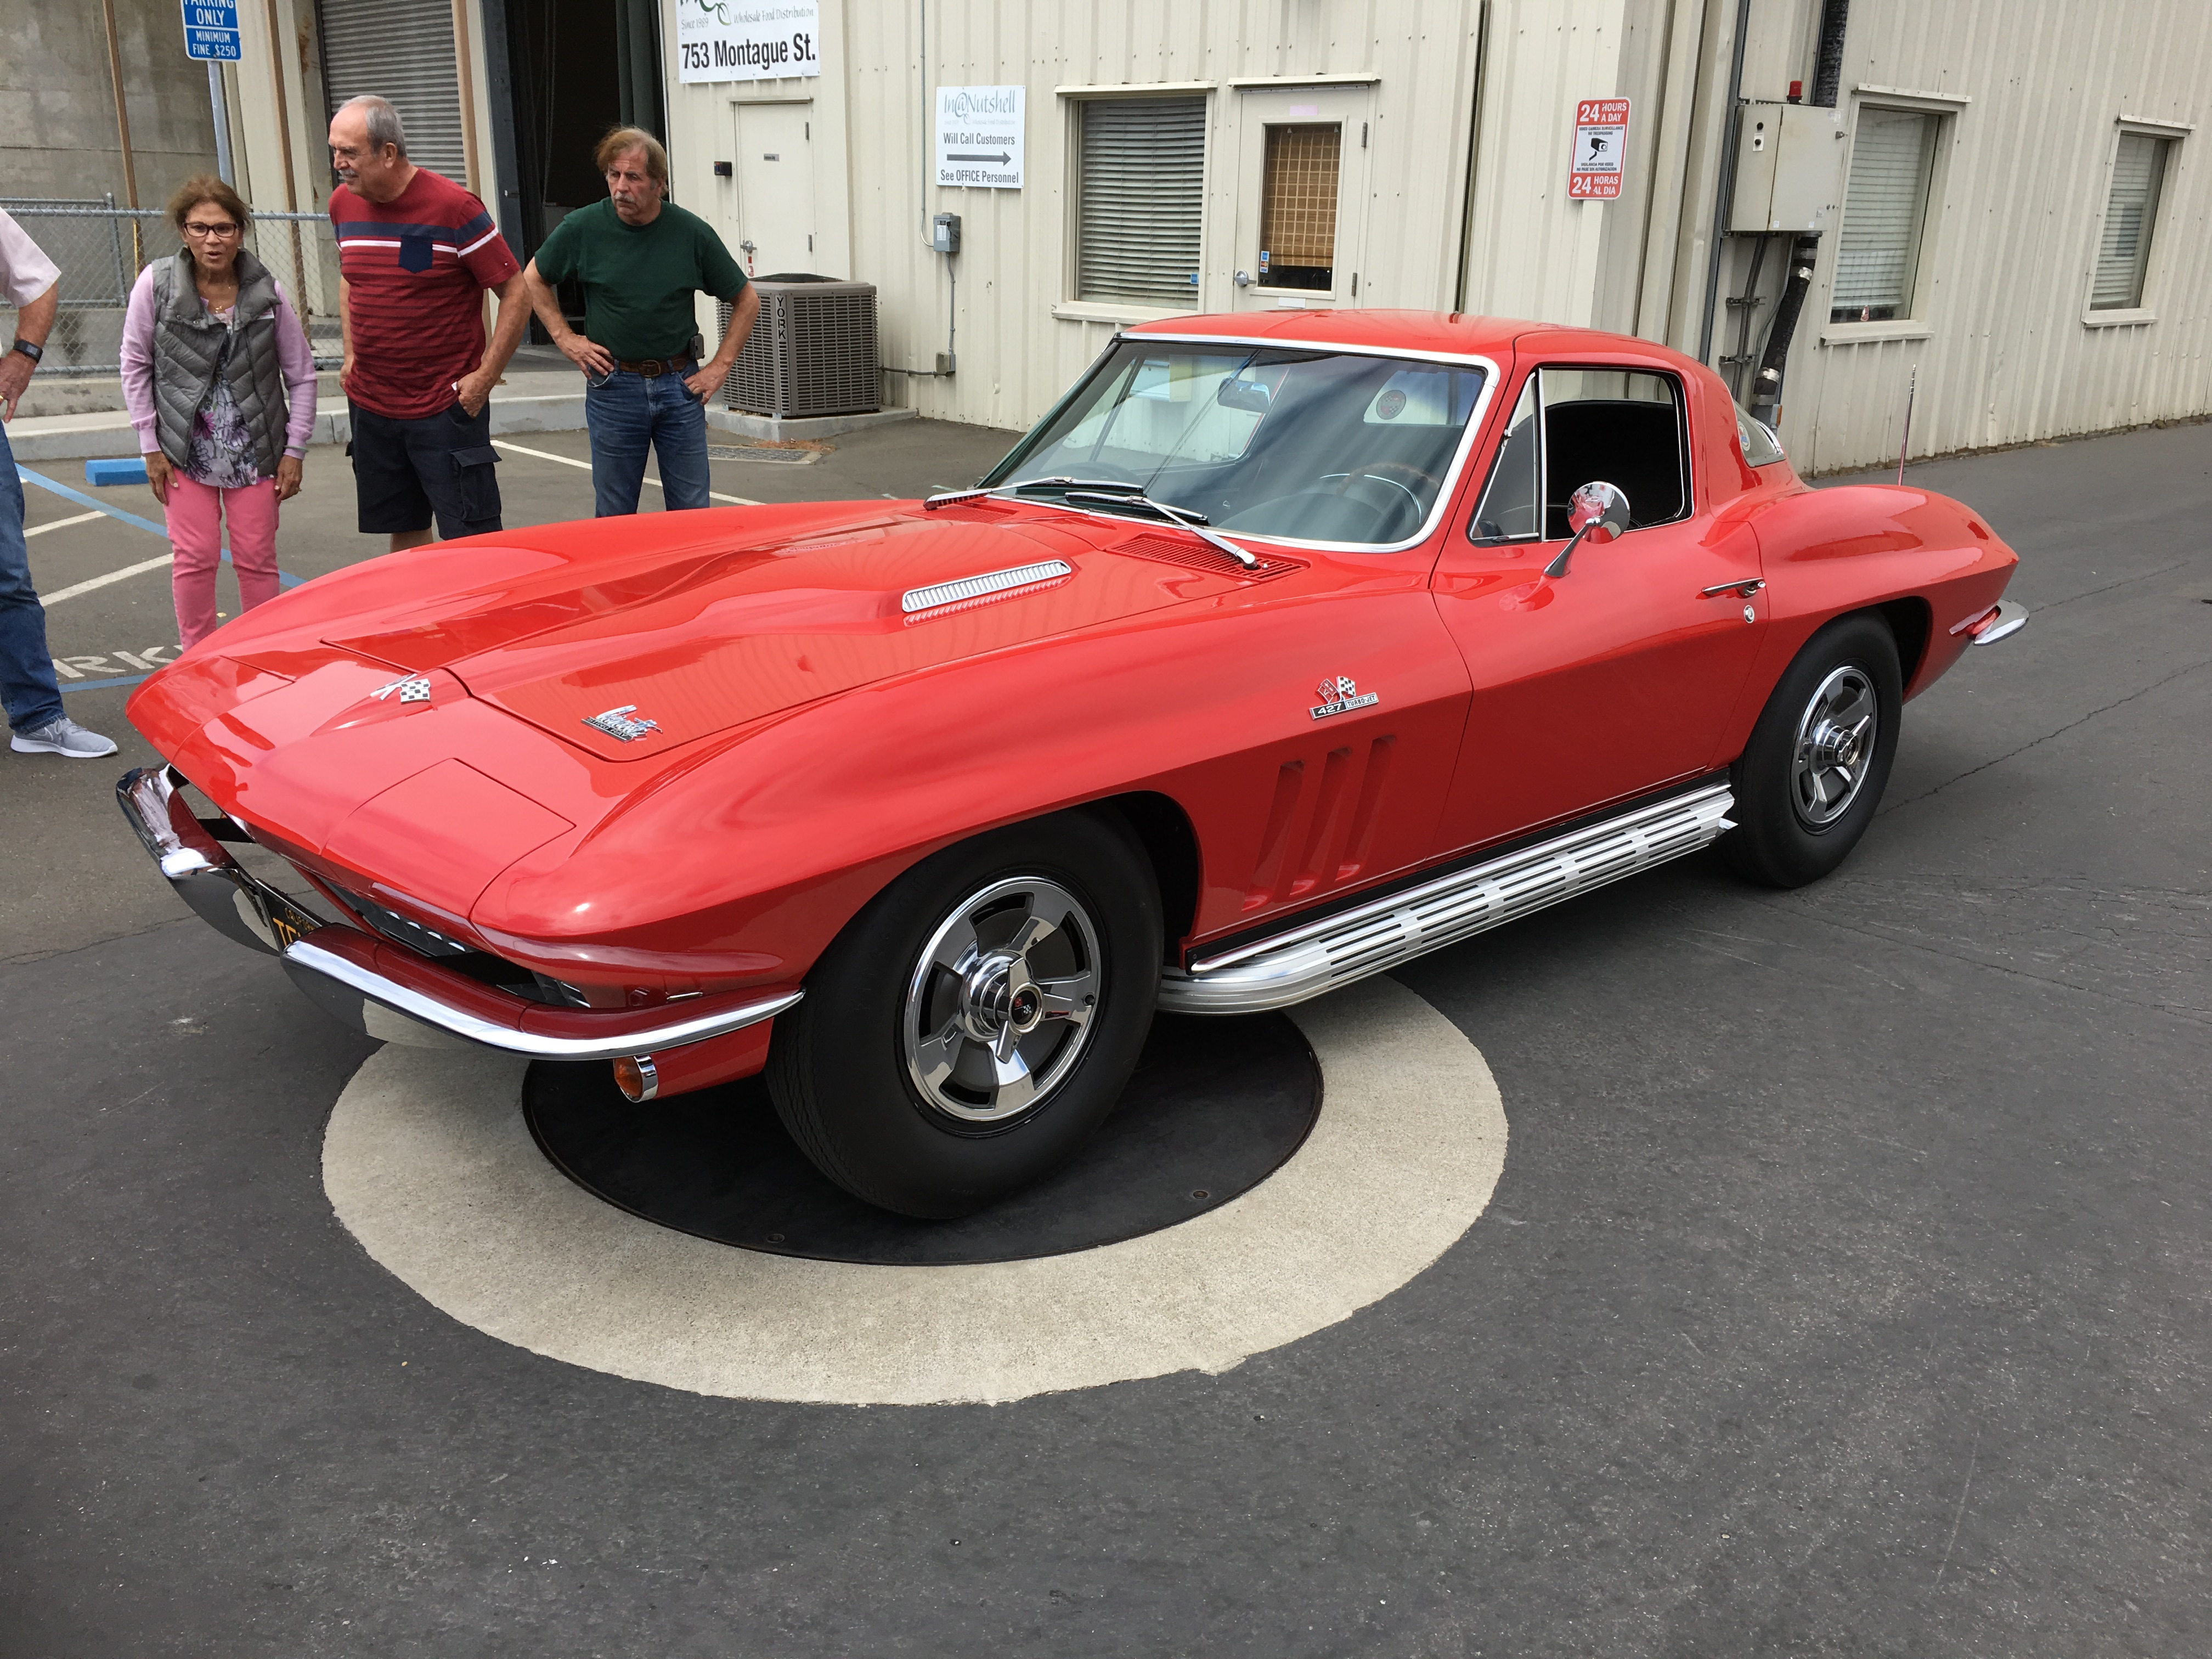 Ray Muscat's BB '66 Corvette